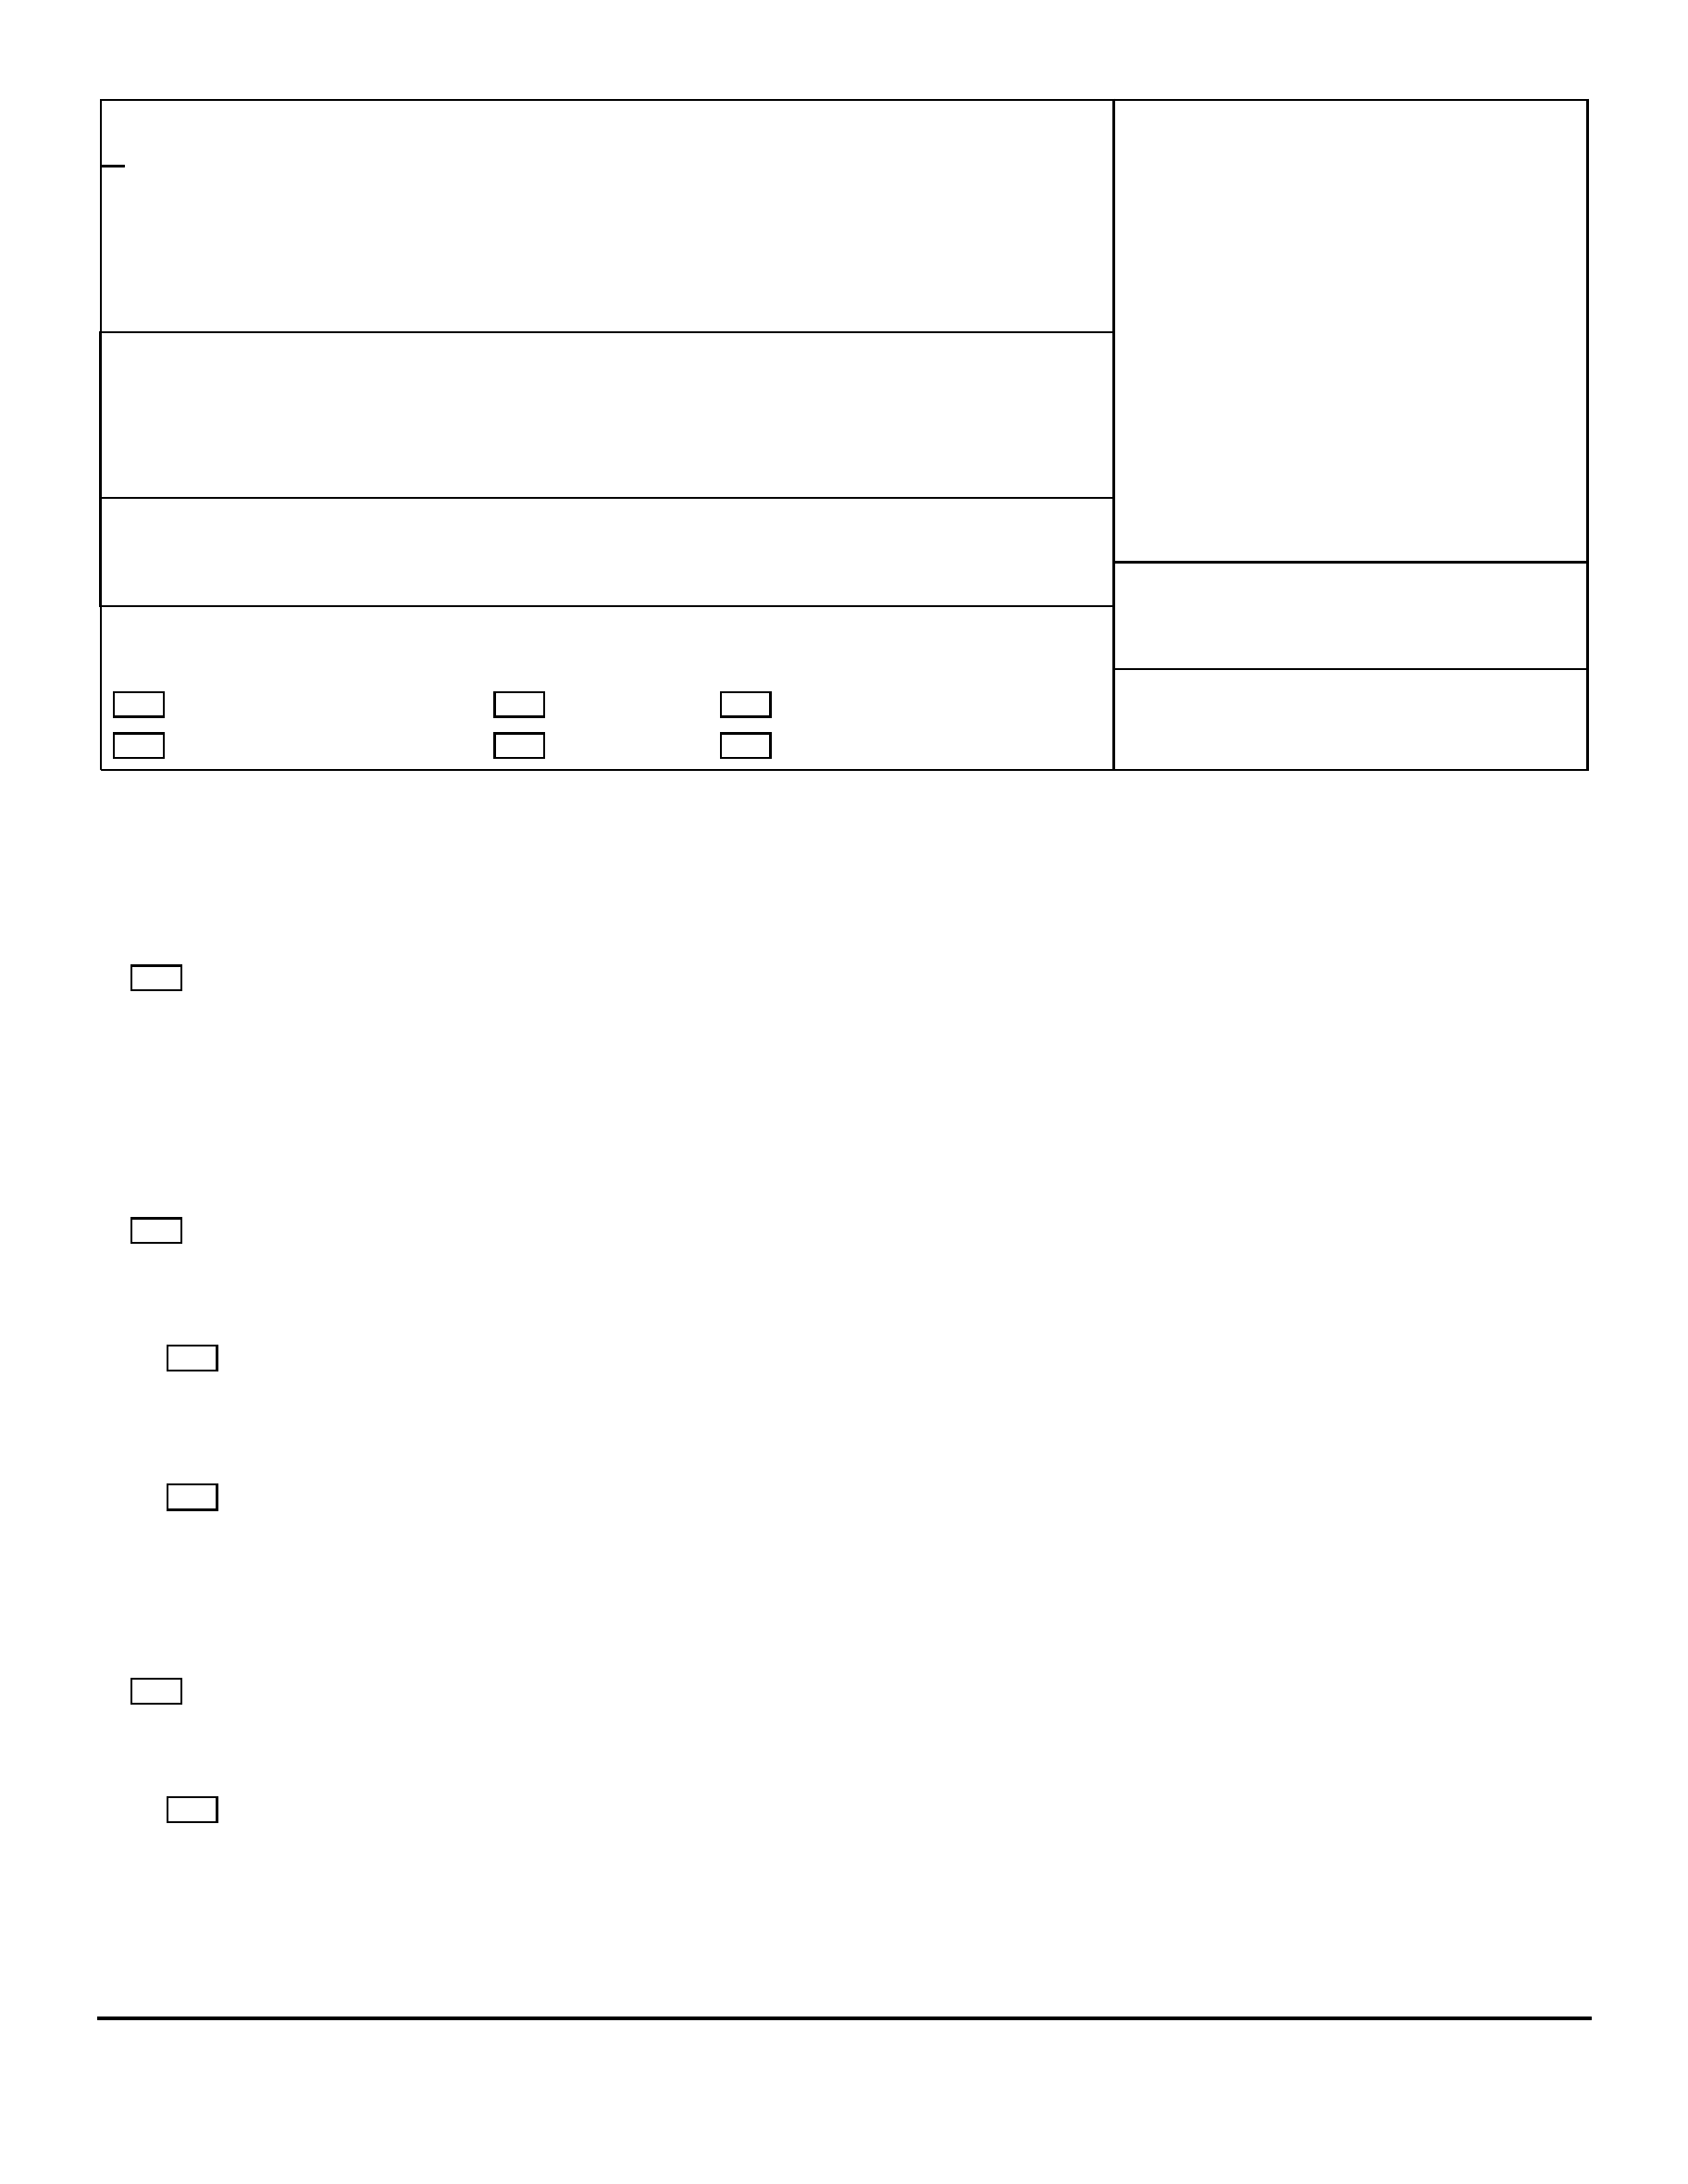 Sample Form for Proof of Service Free Download